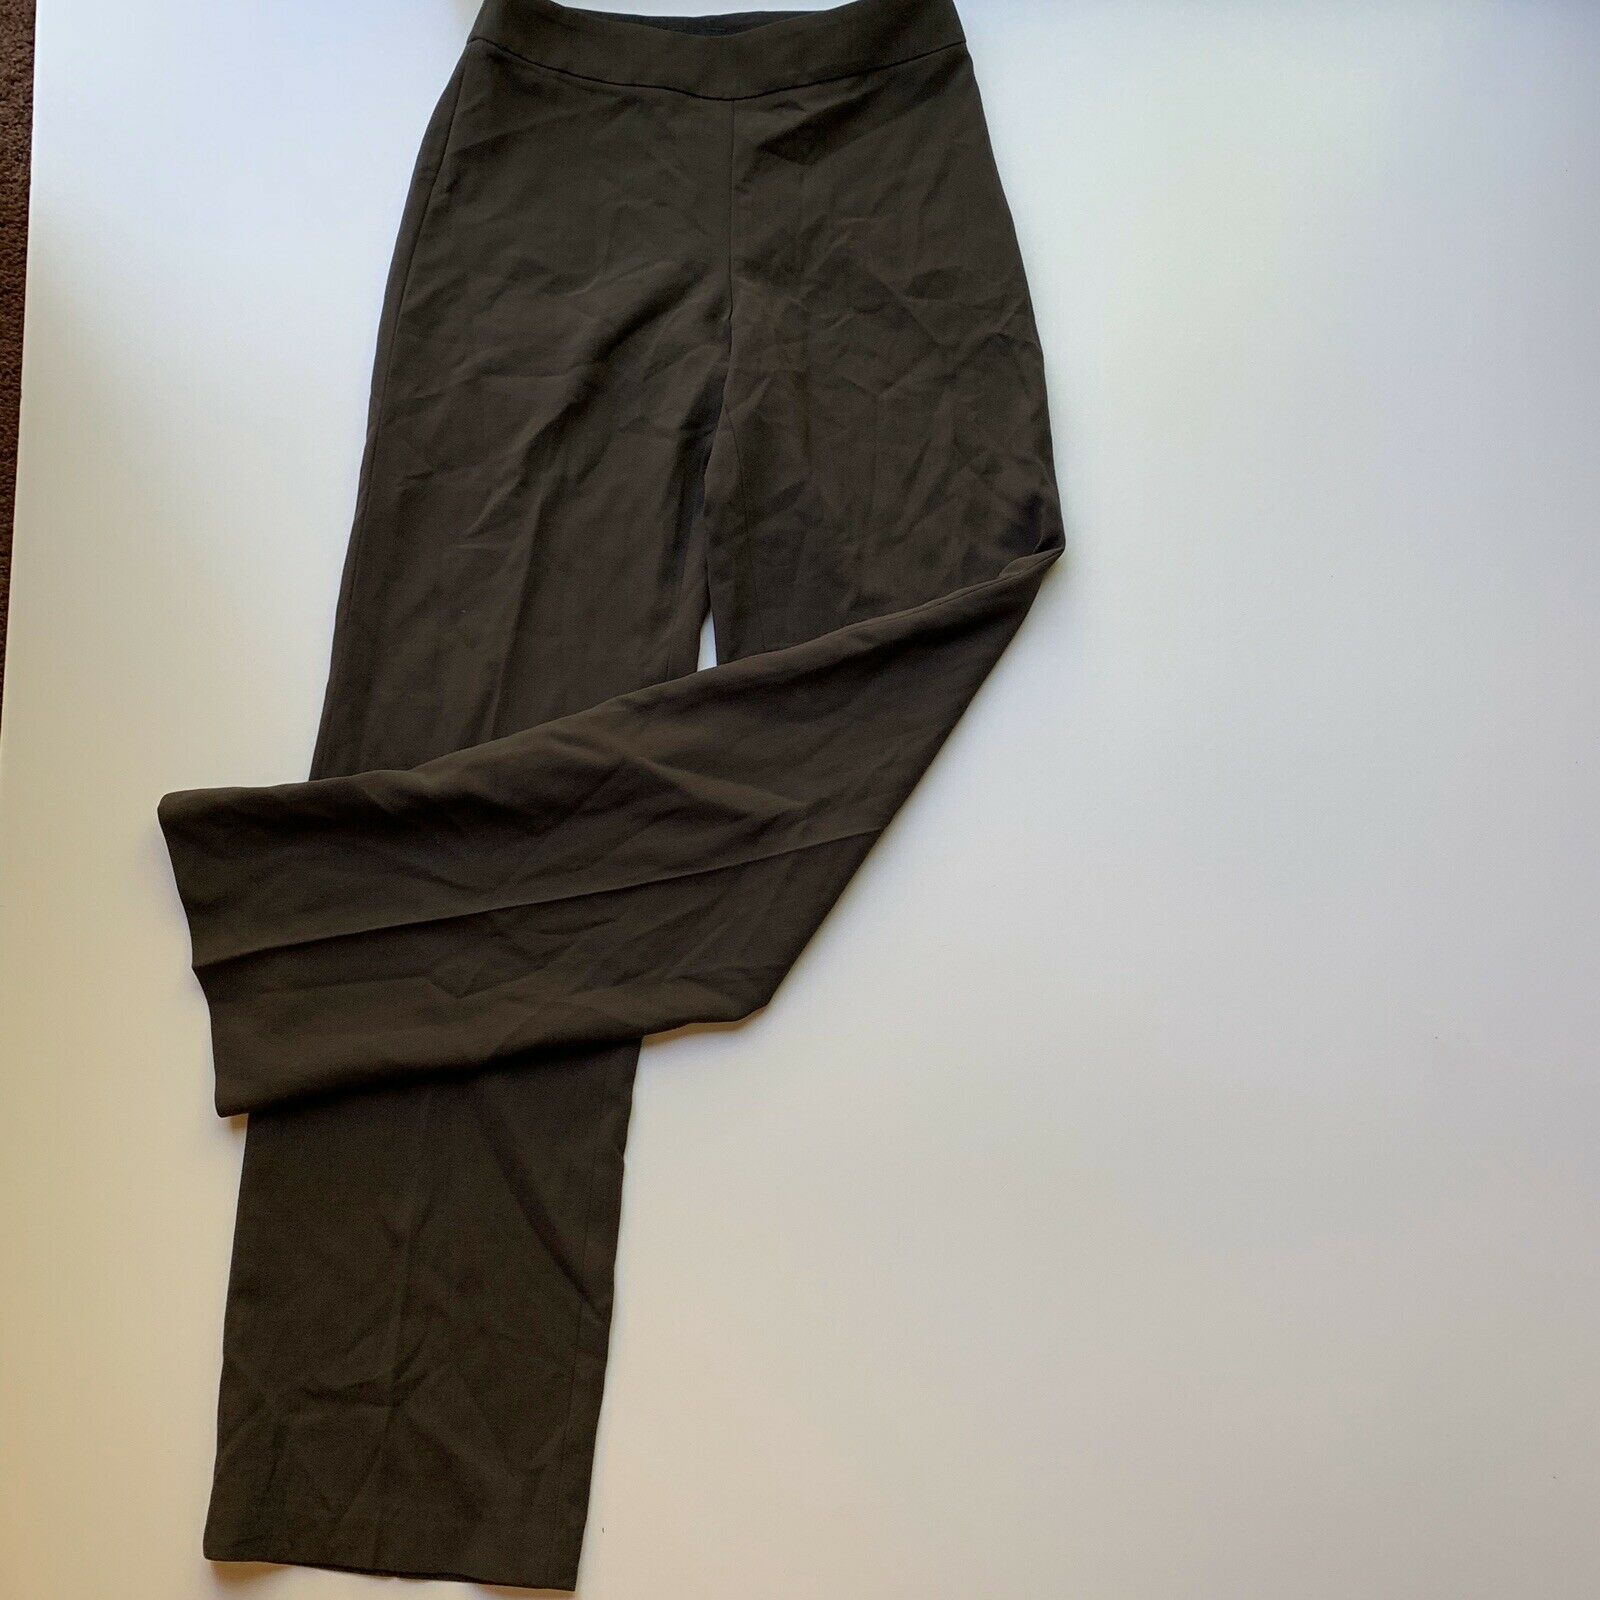 Giorgio Armani Women's Size 40 / Small Brown 100% Wool Dress Pant Trousers Italy image 7